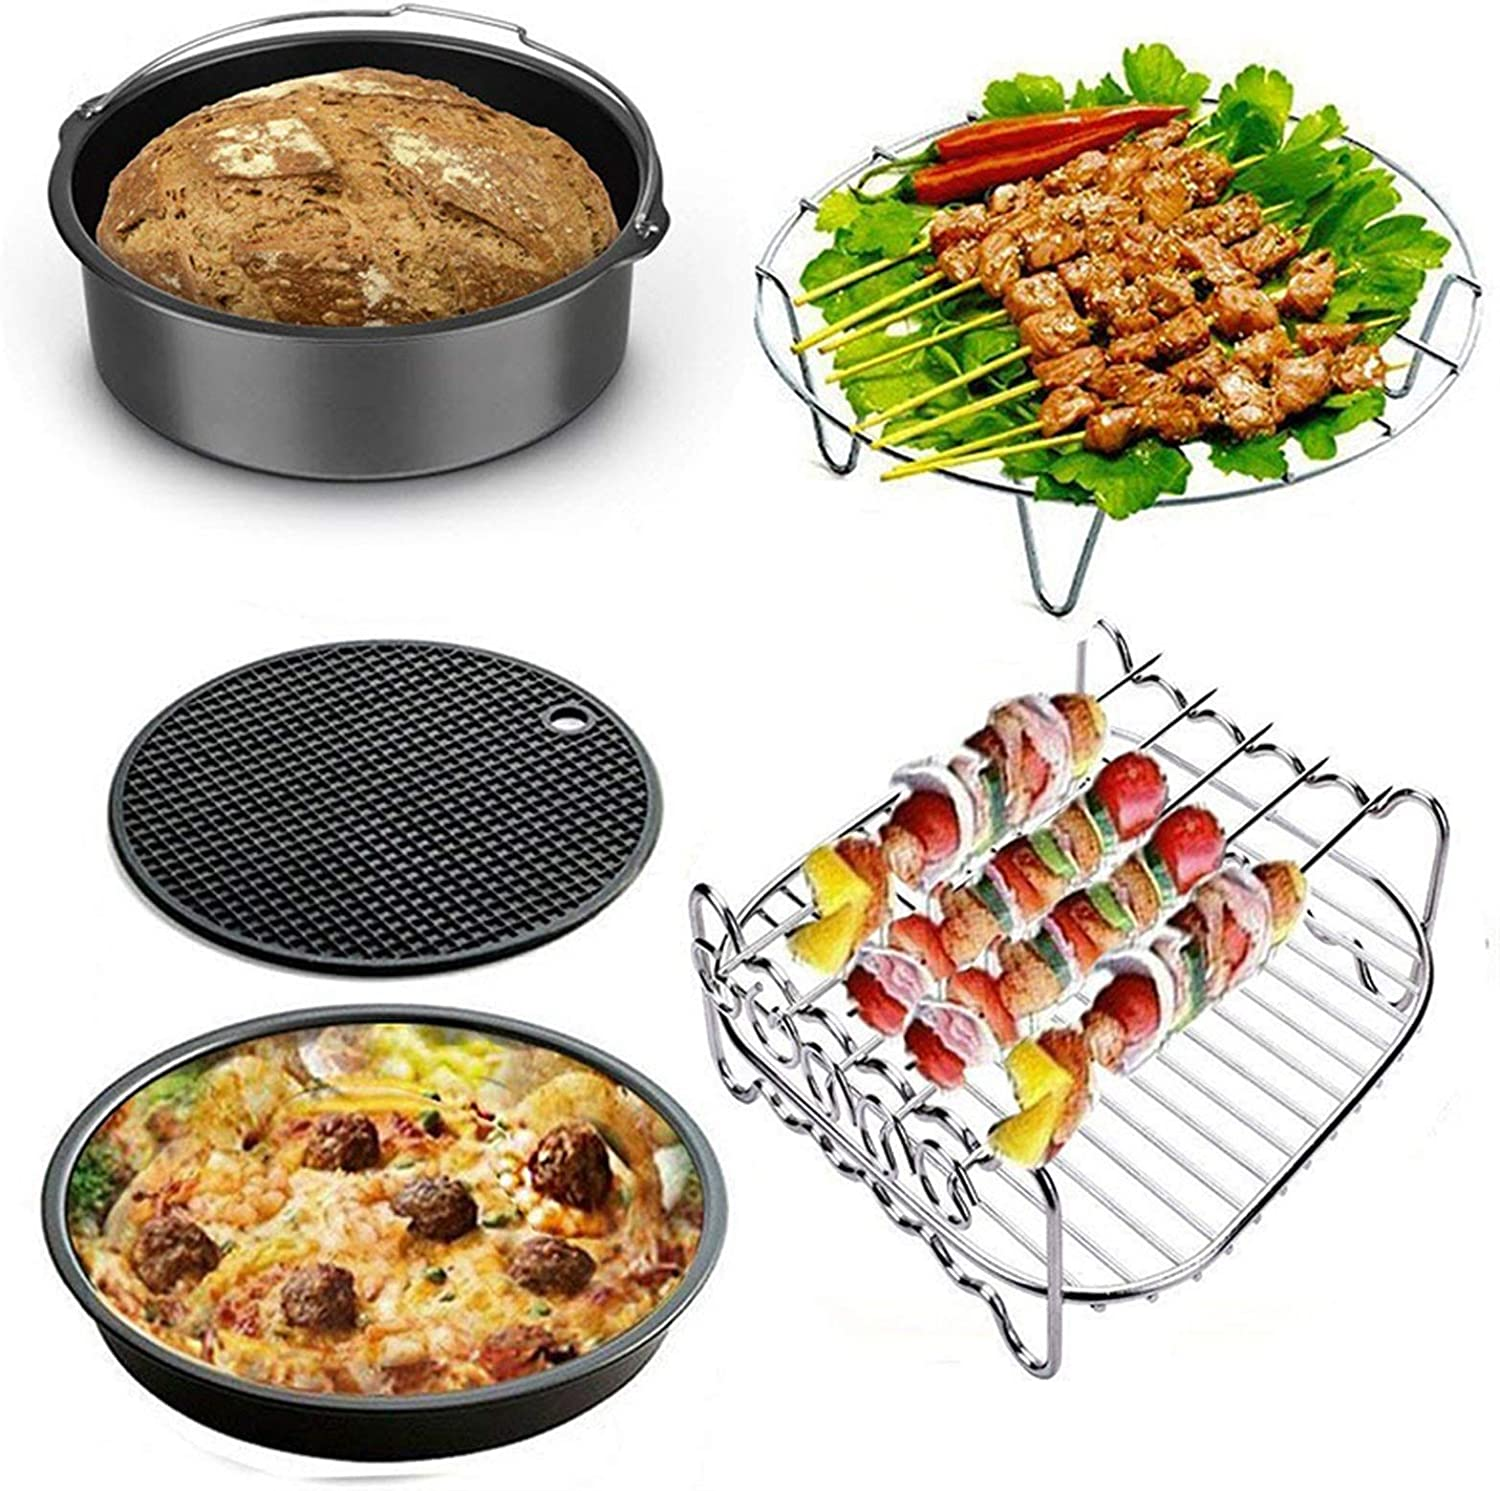 ODSHY 7 Inch Air Fryer Accessories for Gowise Phillips Cozyna and Secura, Set of 8, Fit All Airfryer 3.7 4.2 5.3 5.8QT (Color : Full Set 3)